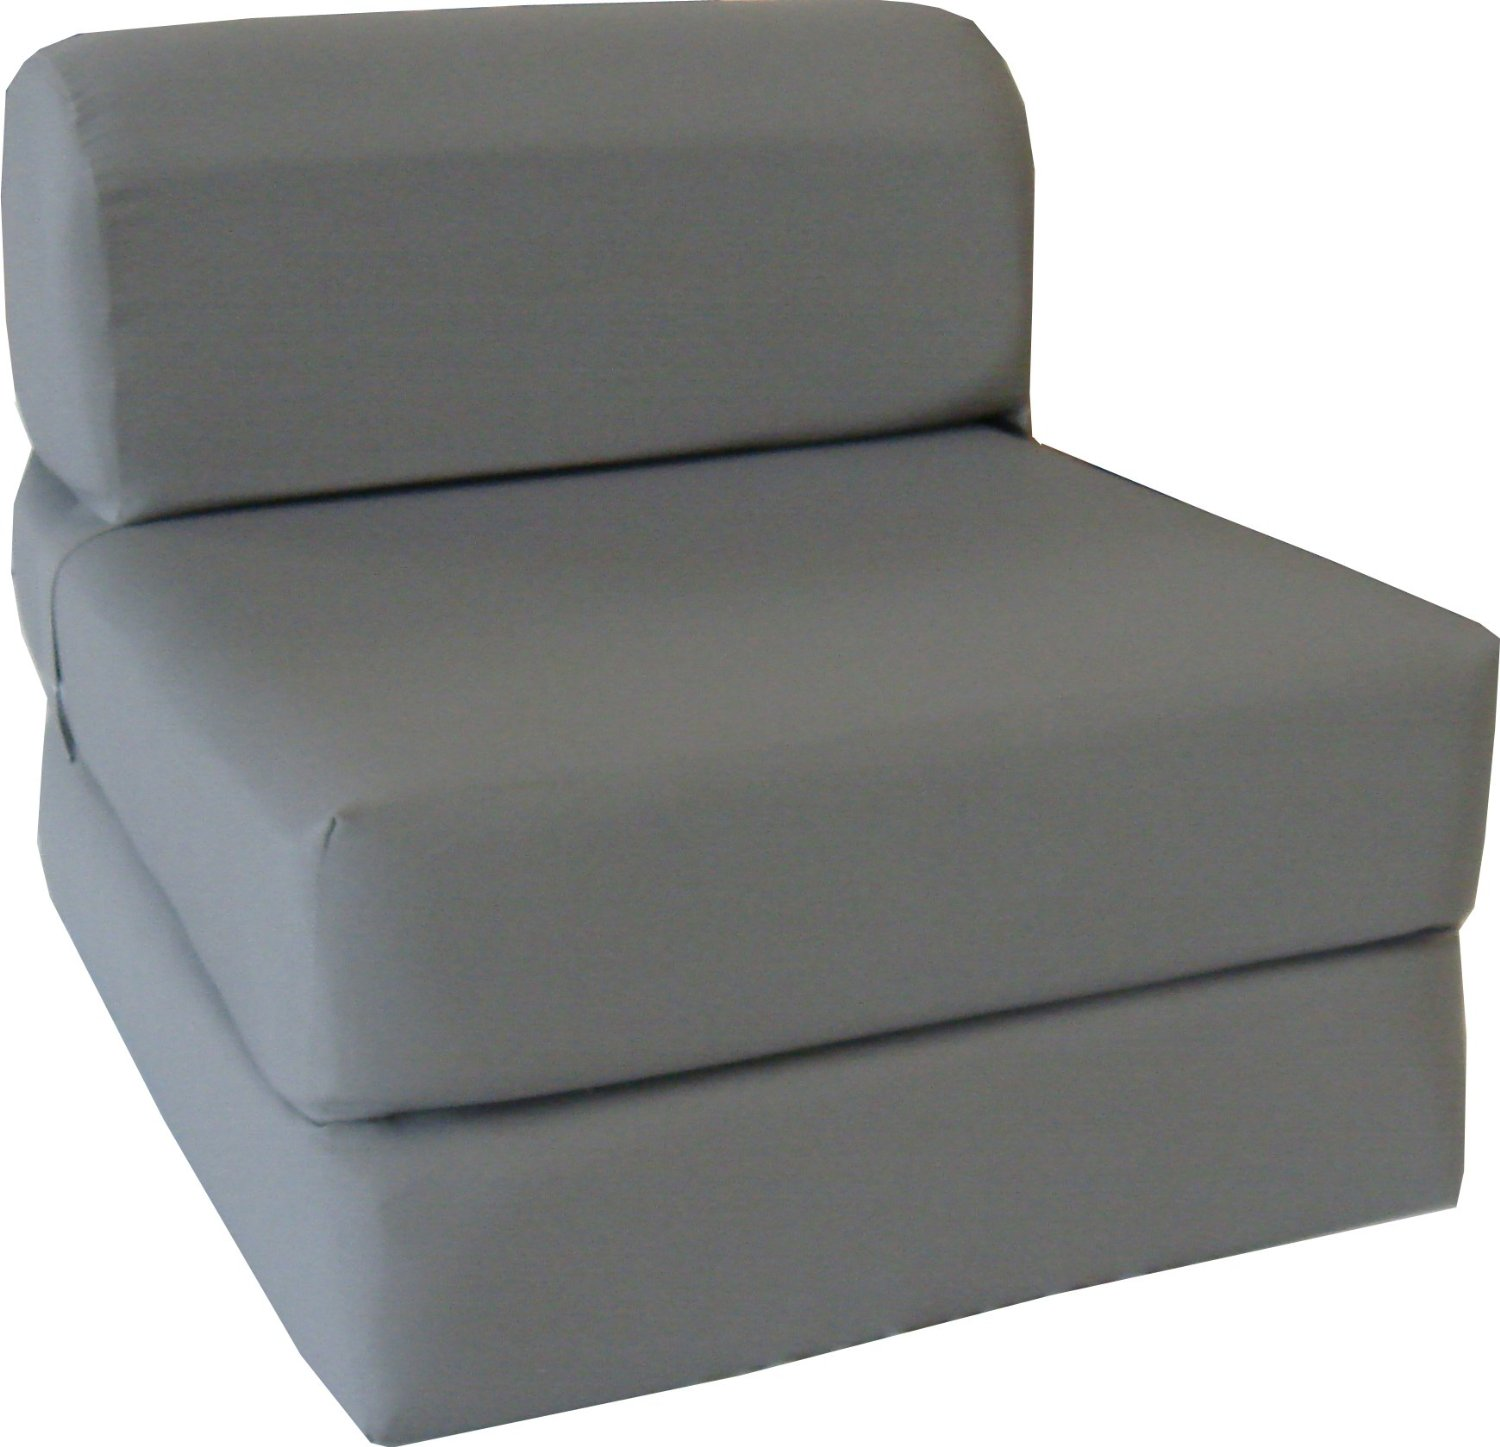 "Gray Sleeper Chair Folding Foam Bed Sized 6"" Thick X 32"" Wide X 70"" Long, Studio Guest Foldable Chair Beds, Foam Sofa, Couch, High Density Foam 1.8 Pounds."